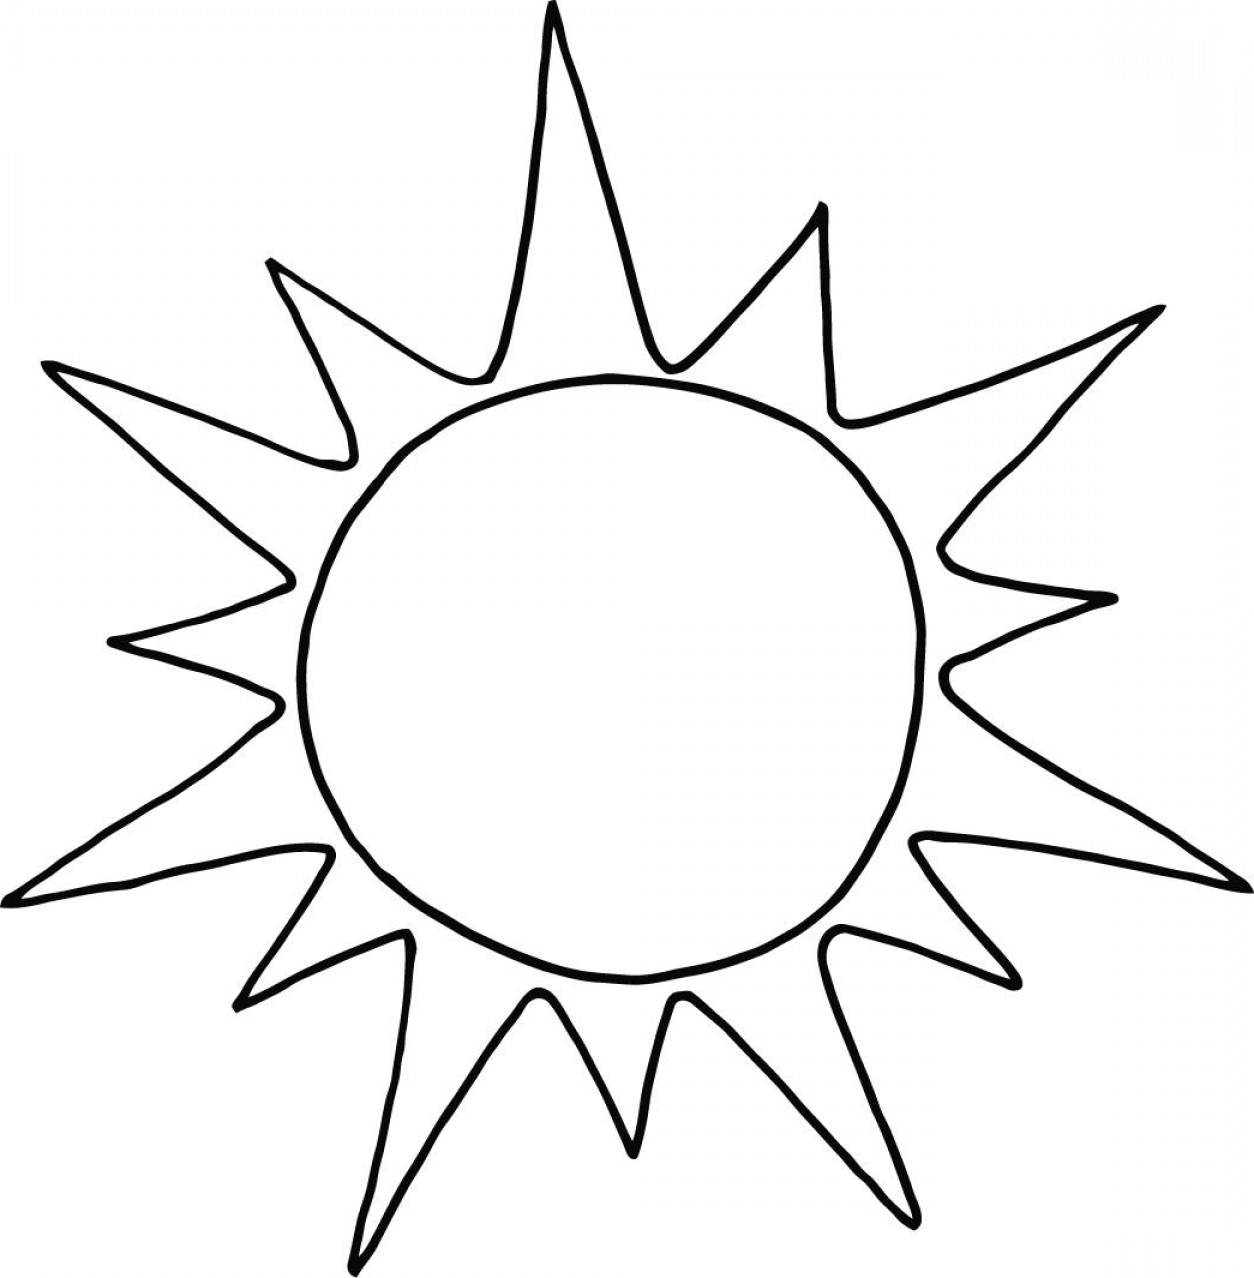 coloring sun clipart black and white best sun clipart black and white 1830 clipartioncom white and coloring black clipart sun